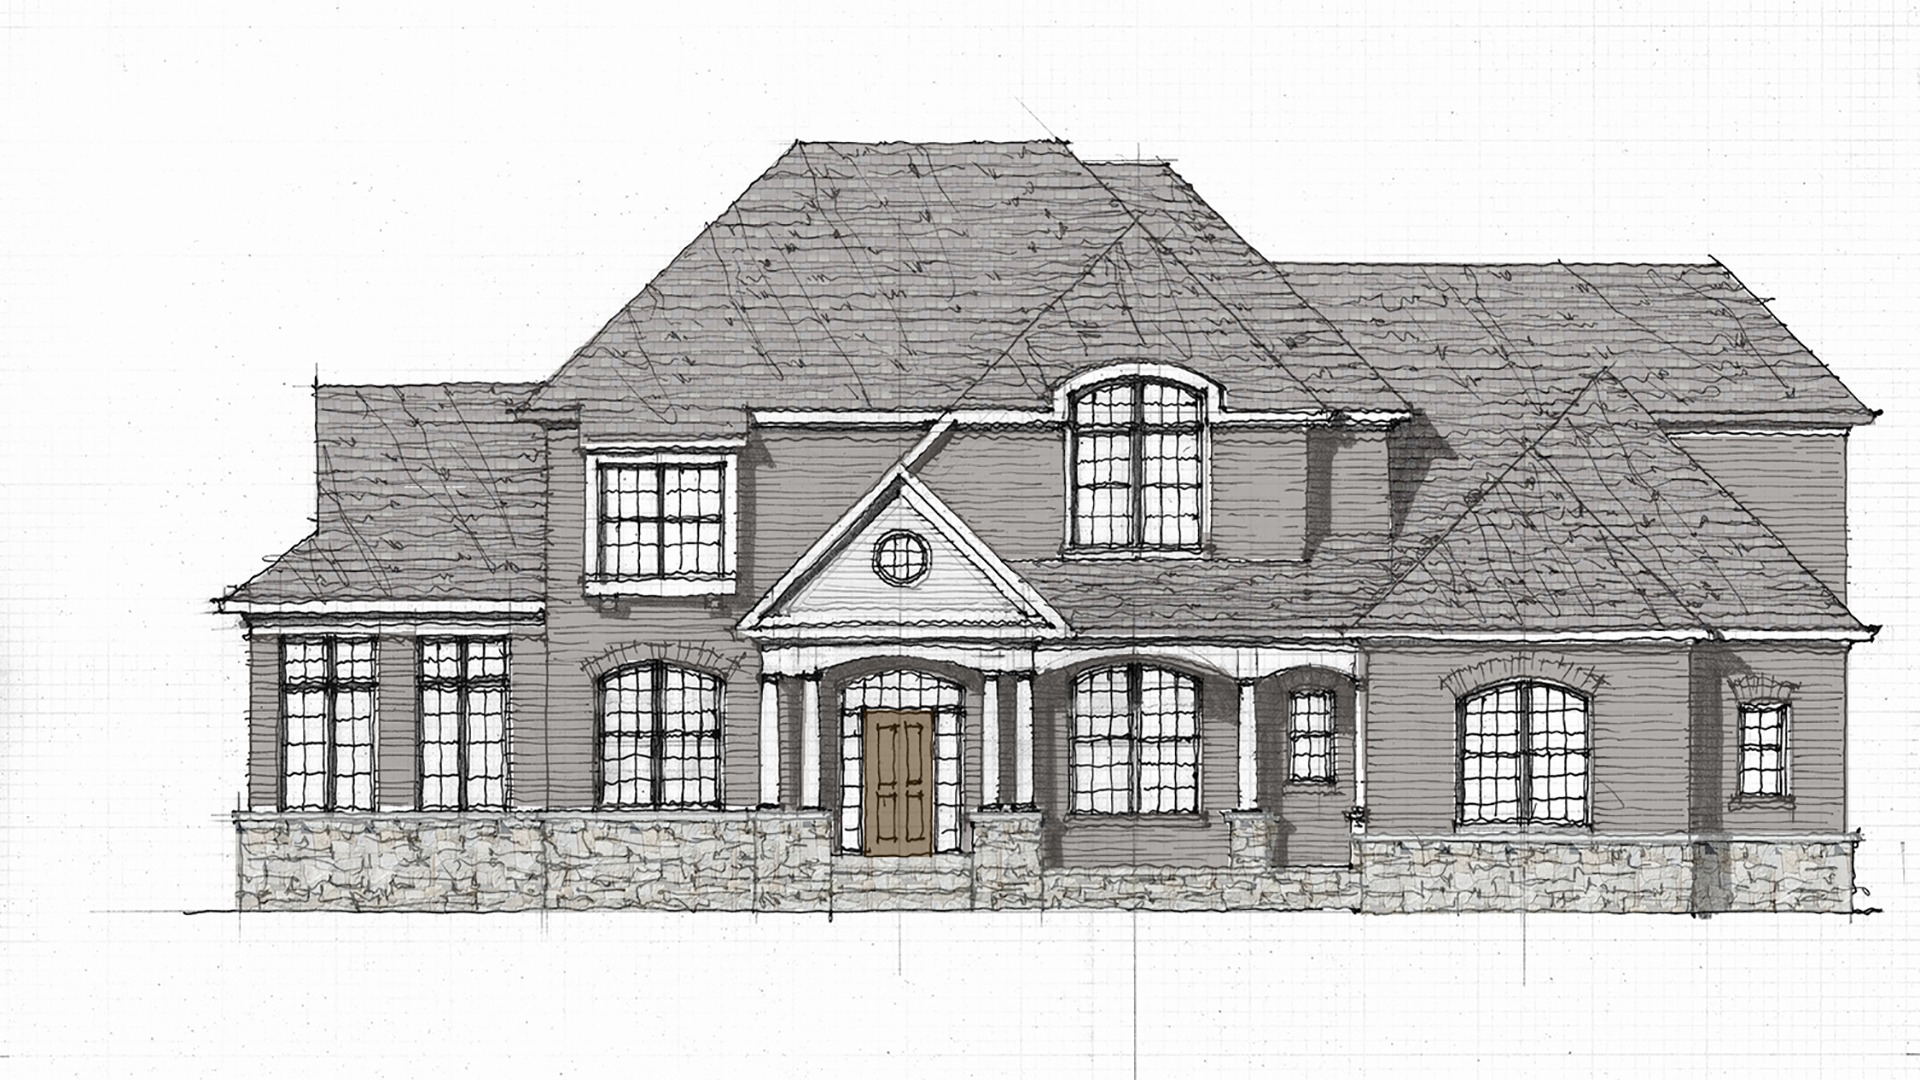 This is a rendering of a color package for the custom elevation designed for the home on Seneca Green Way.